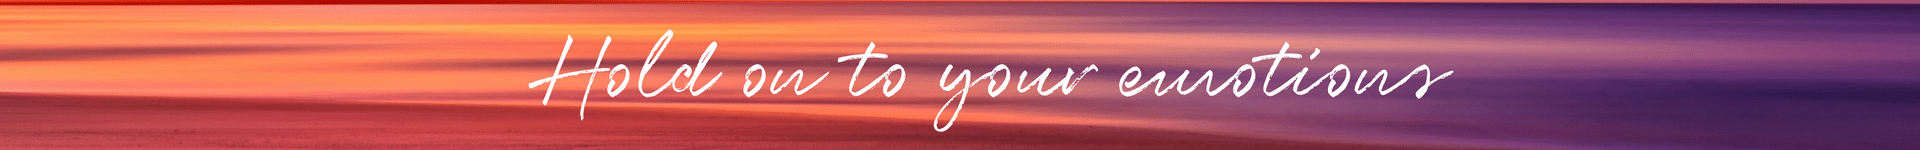 Hold on to your emotions banner smaller white